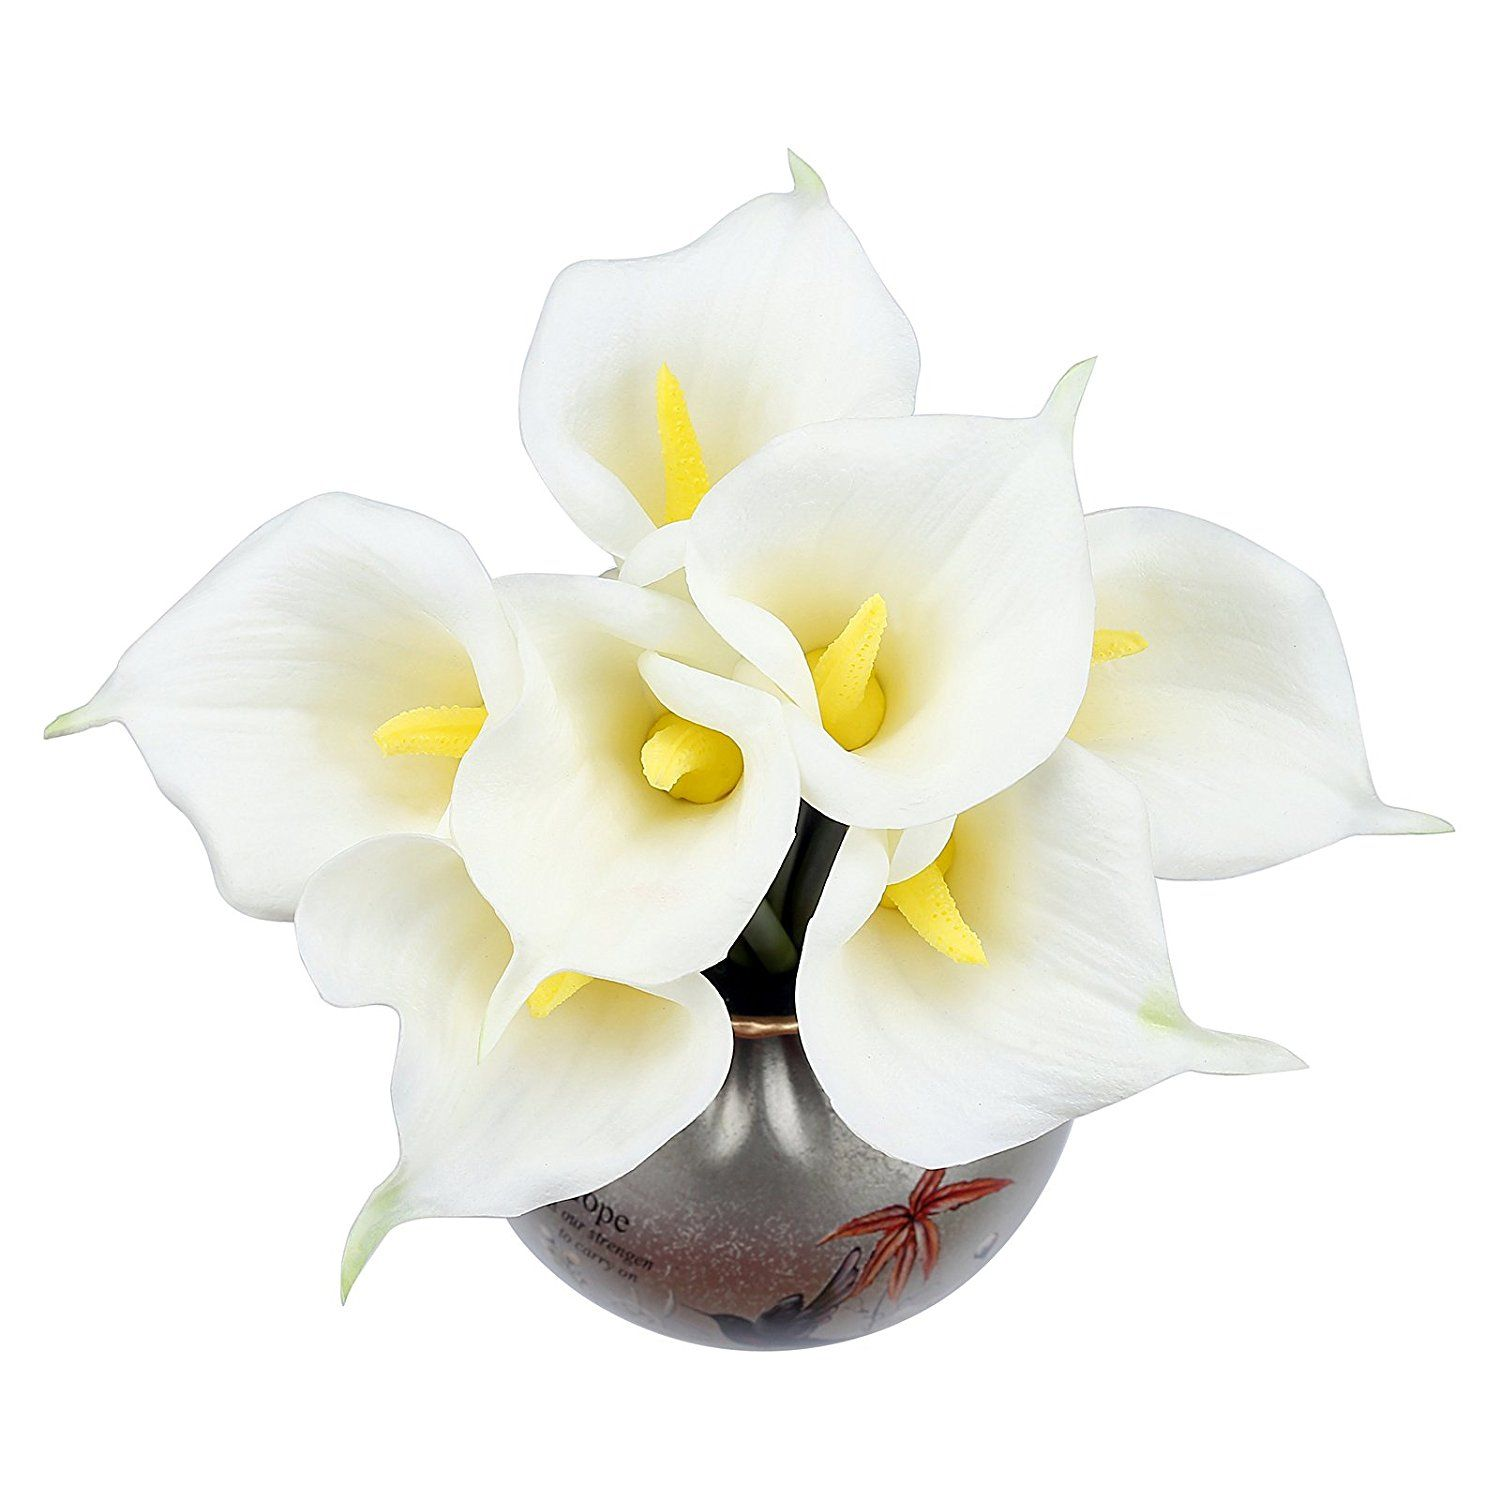 10pcs White Calla Lily Flower Latex Real Touch for Wedding Bouquet ...